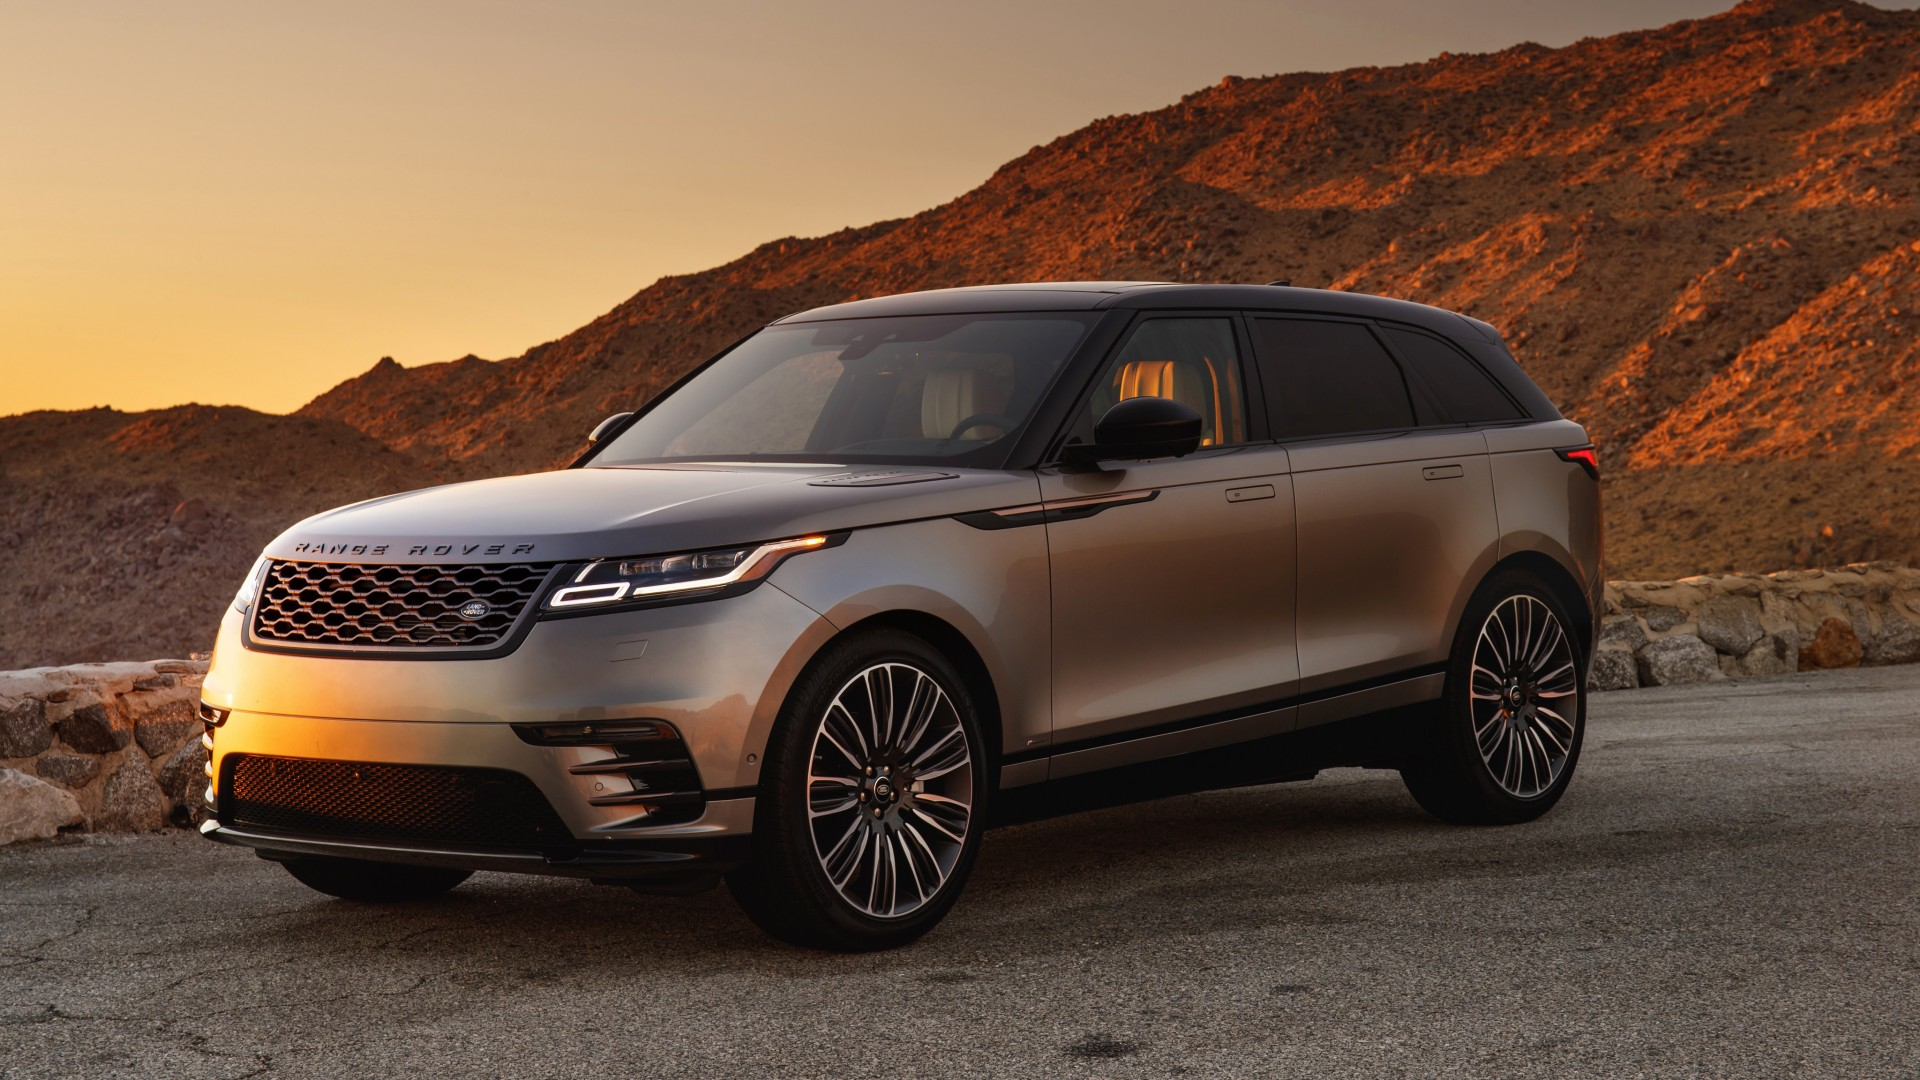 2018 Range Rover Velar R Dynamic P380 HSE First Edition 4K Wallpaper | HD Car Wallpapers | ID #8800